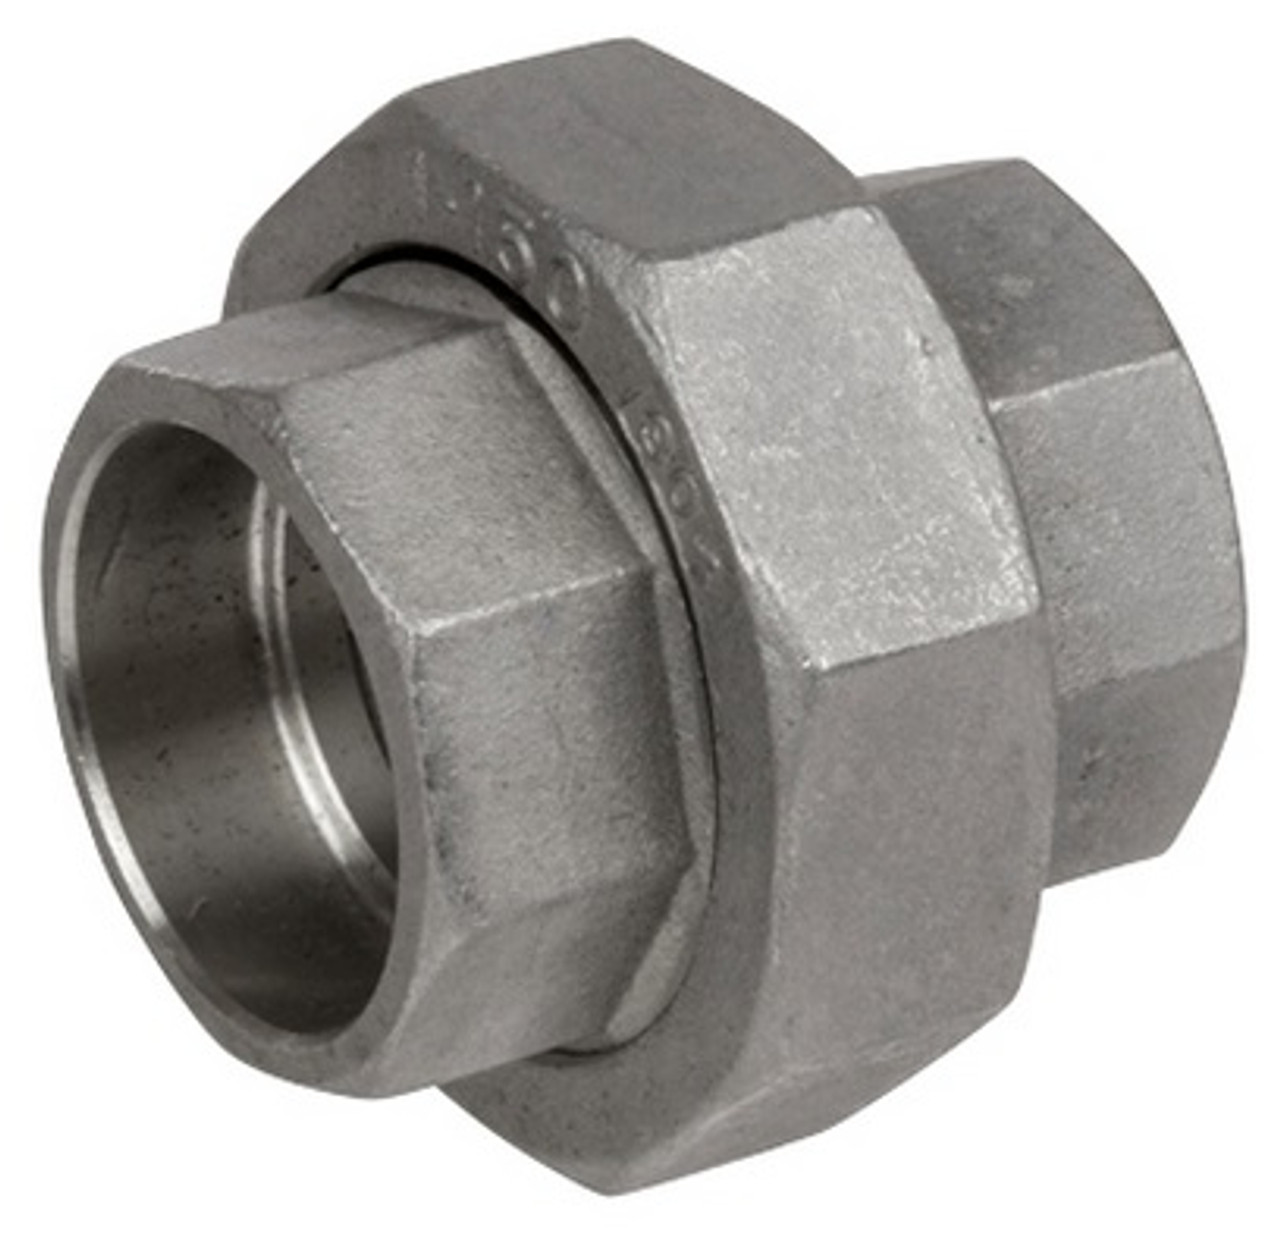 Smith Cooper 3000# Forged Stainless Steel 3/8 in. Union Fitting - Socket Weld - John M. Ellsworth Co. Inc.  sc 1 st  John M. Ellsworth & Smith Cooper 3000# Forged Stainless Steel 3/8 in. Union Fitting ...